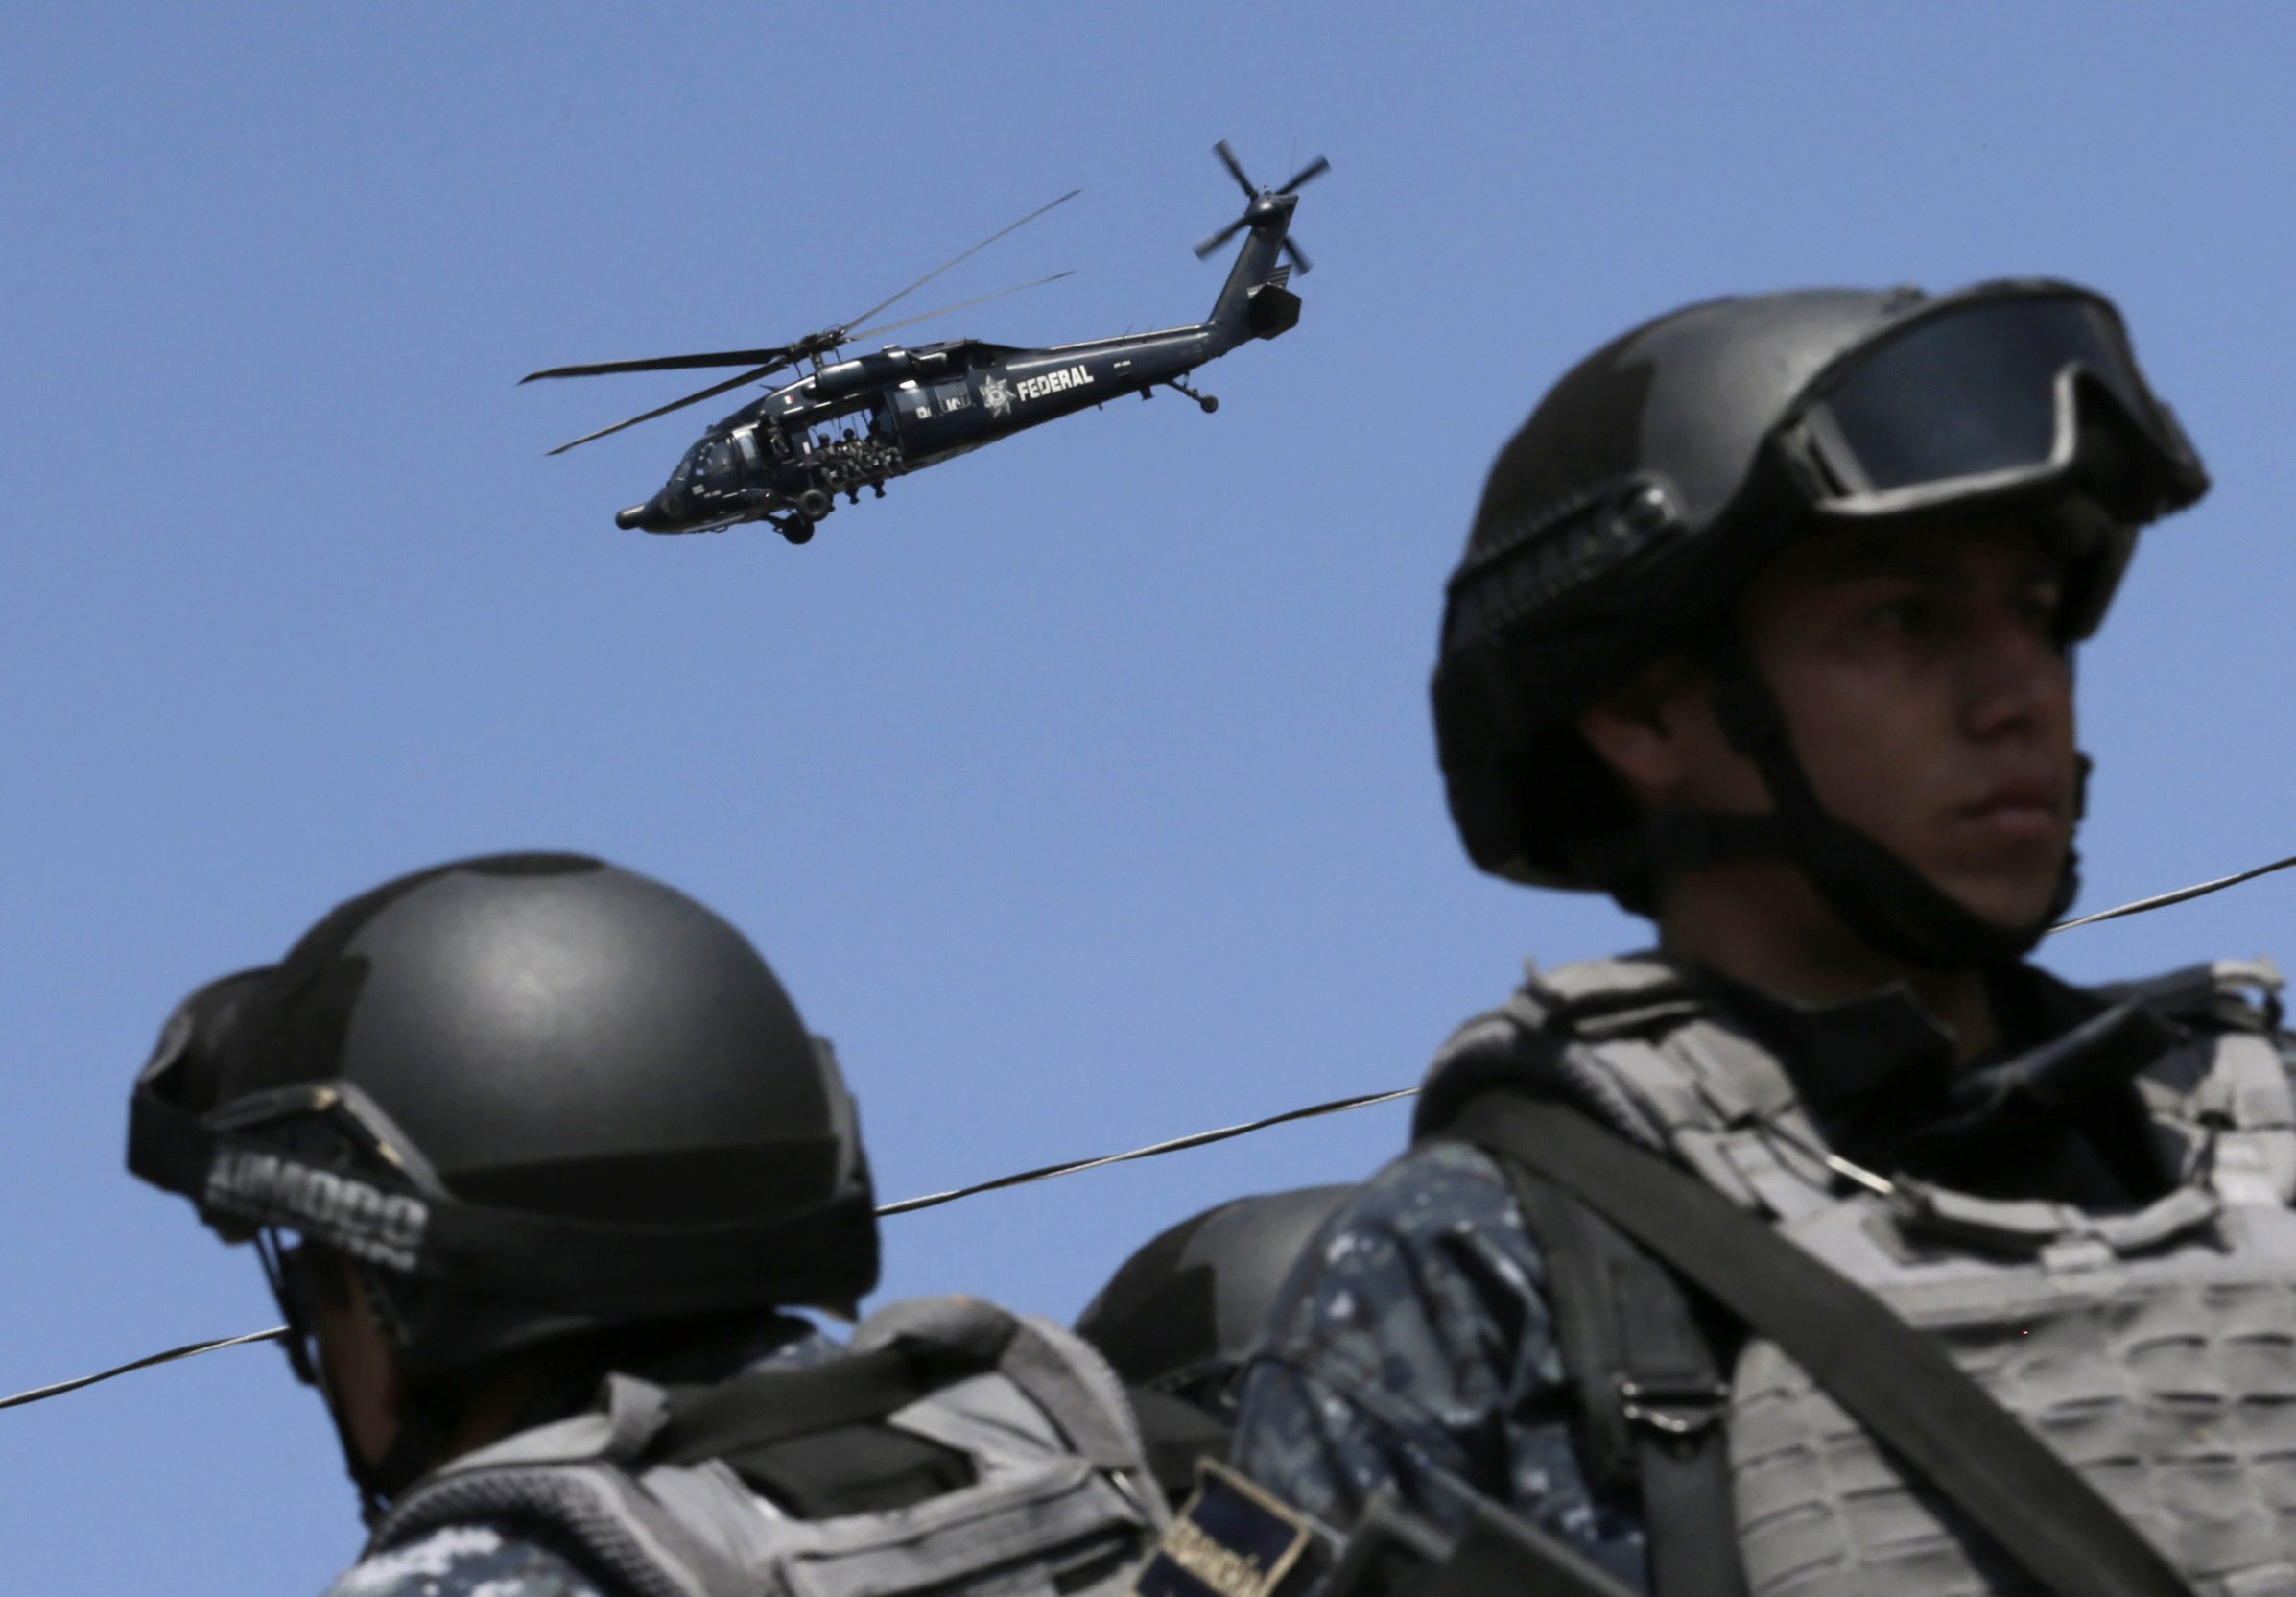 Federal police and a helicopter search for the missing 43 students of the Ayotzinapa Teacher Training College Raul Isidro Burgos are seen in Tianquizolco, near Cocula, Mexico on Nov. 7, 2014.